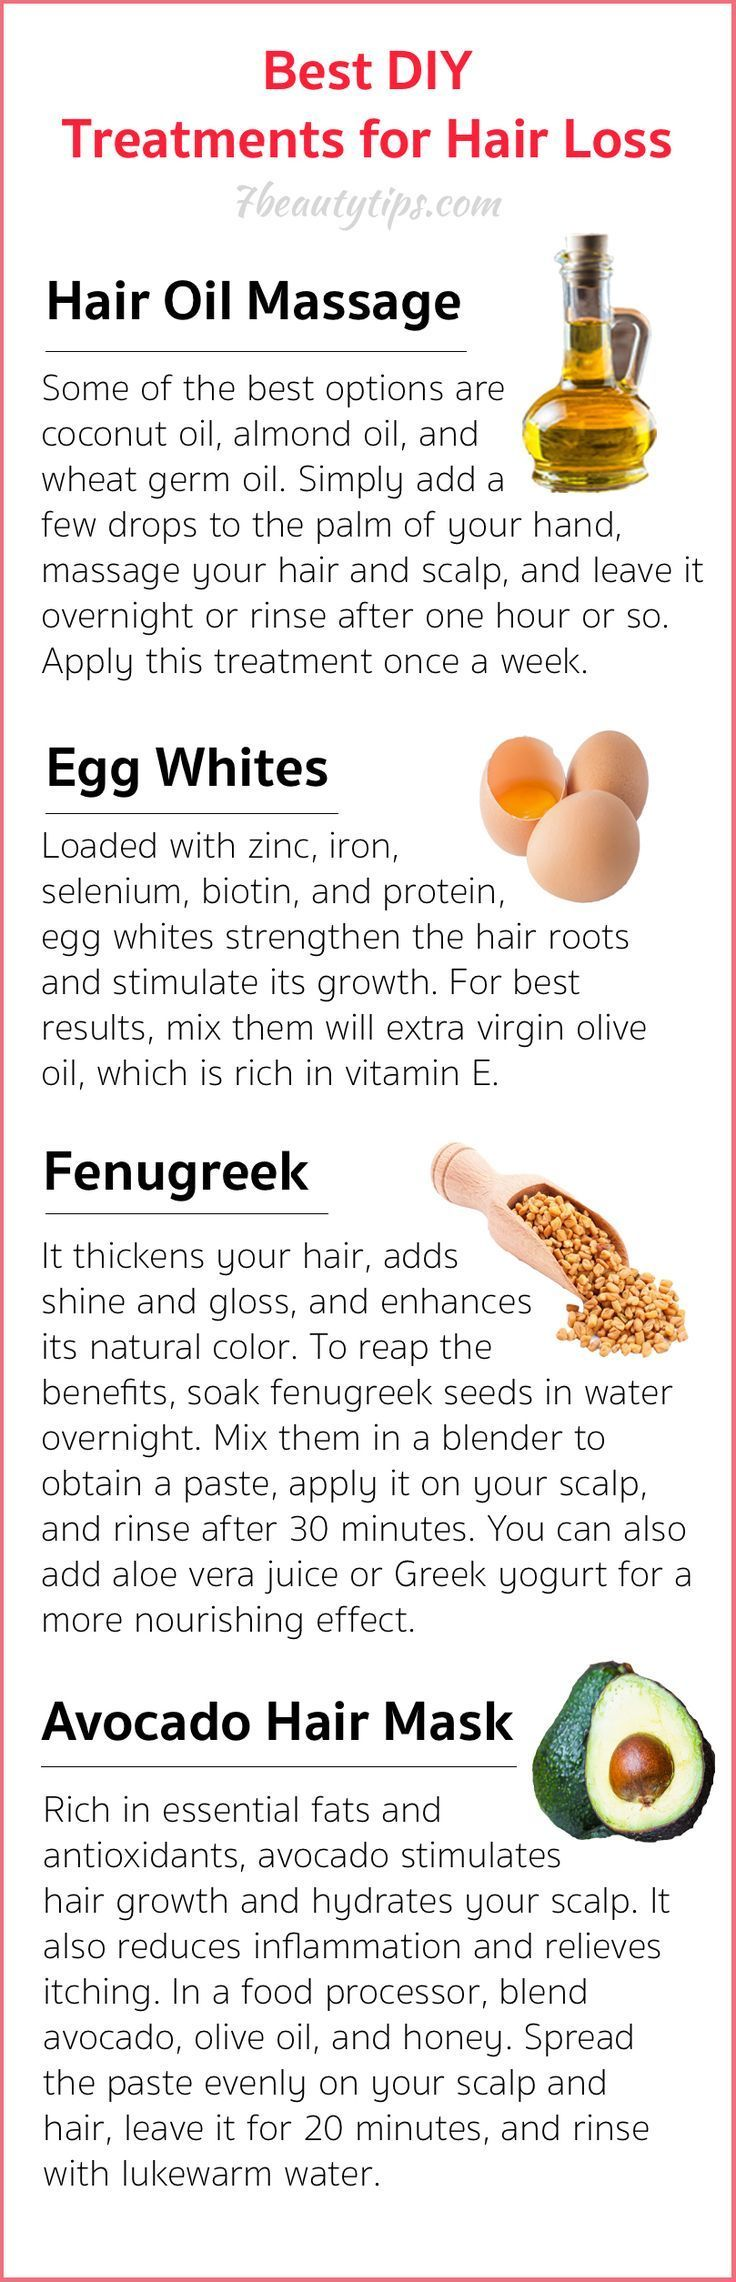 Here are 4 natural hair loss treatments to try.  These ingredients can be found in any supermarket.